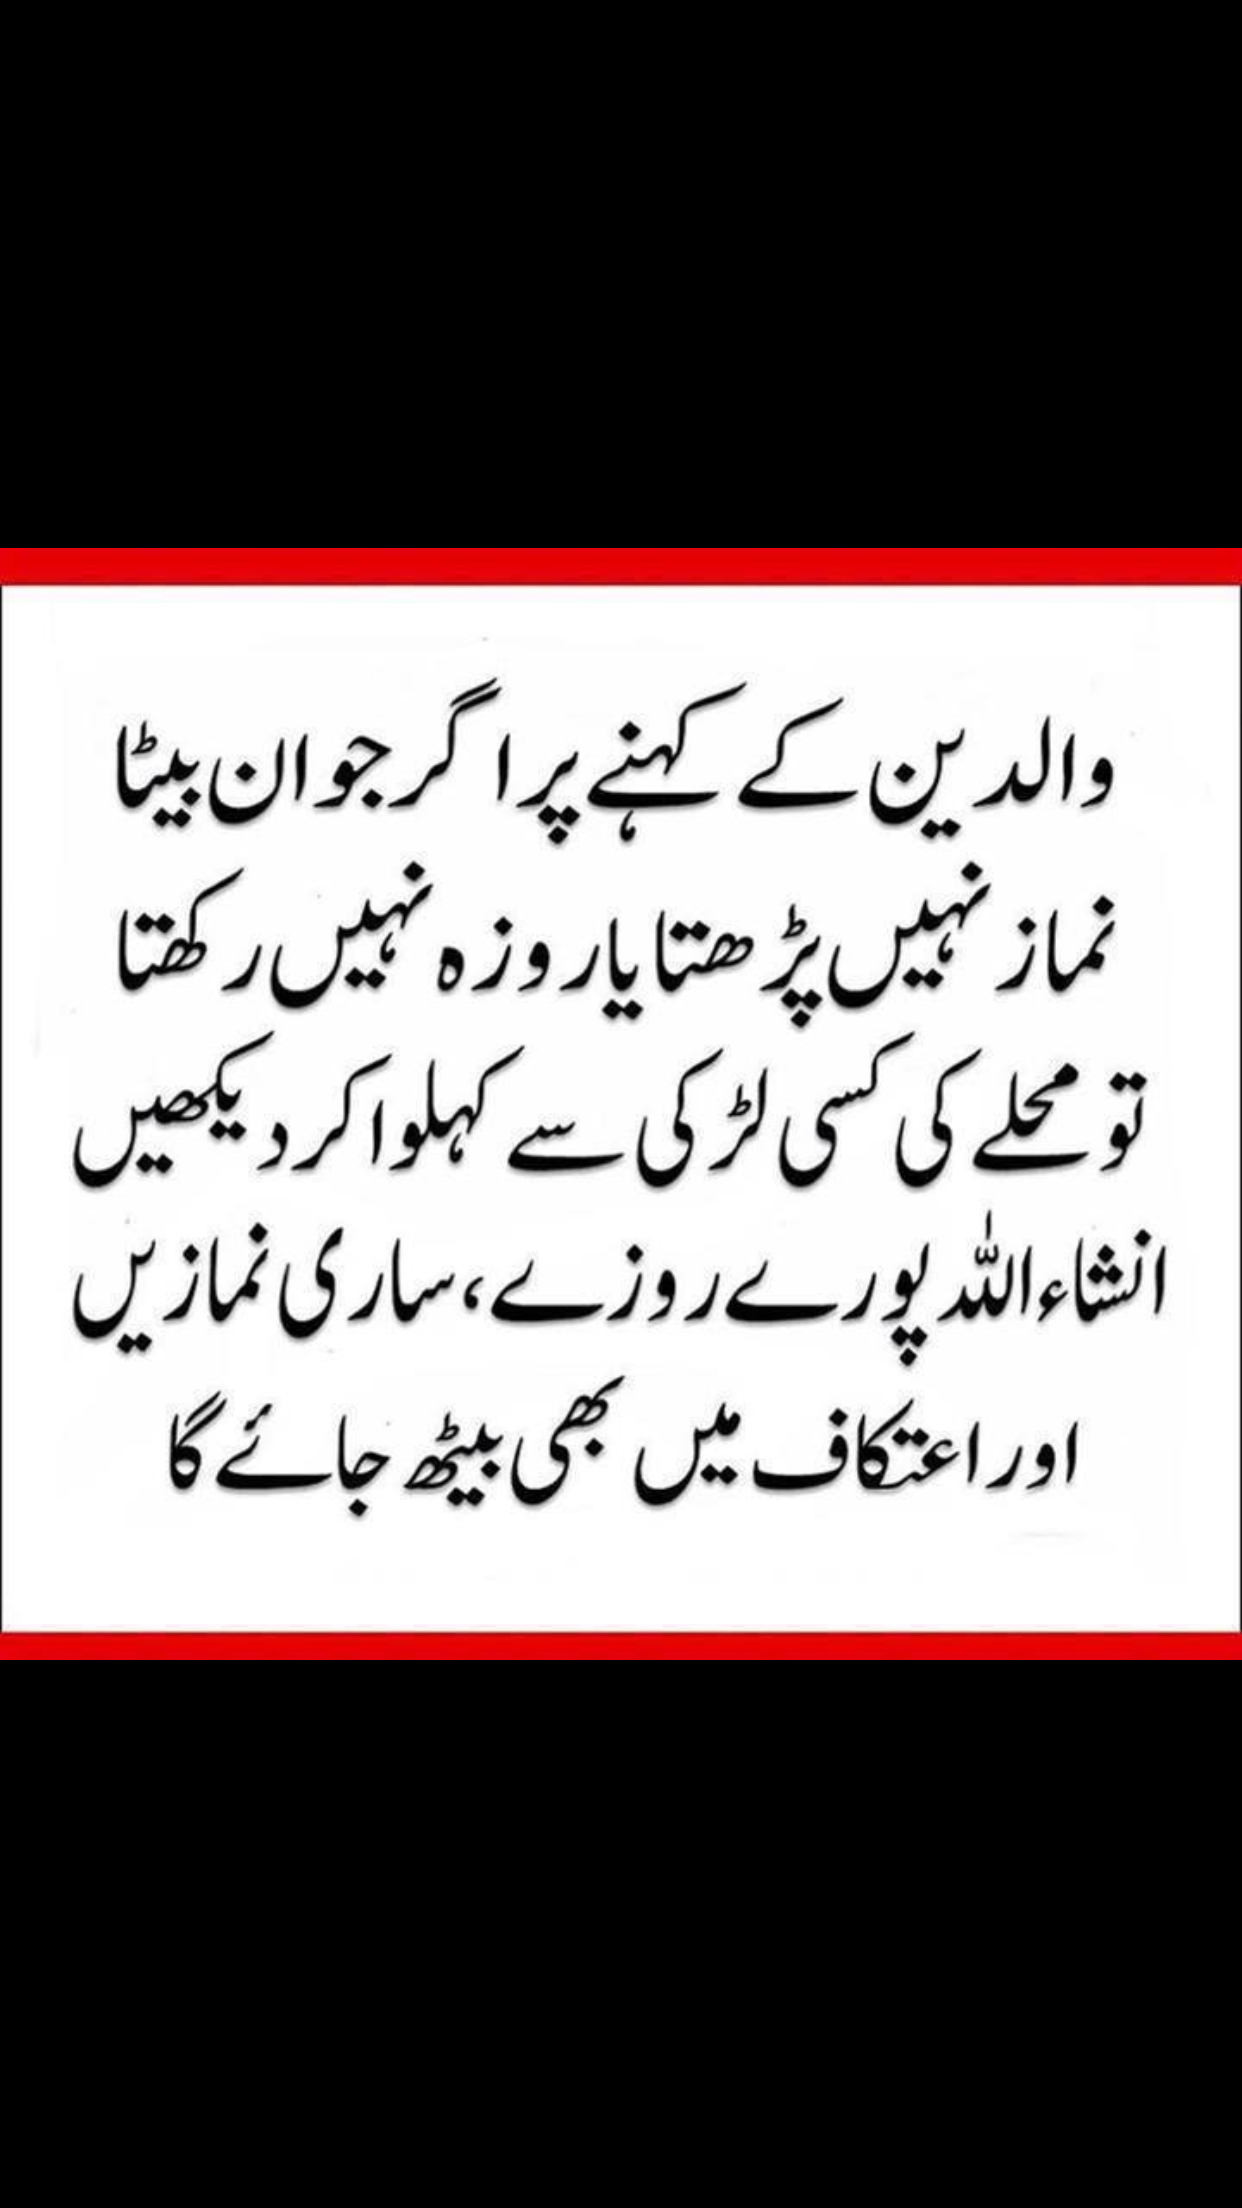 Salaam Love The Idea 100 Efective He Will Read All His Namaaz Funny Images With Quotes Funny Words Jokes Quotes